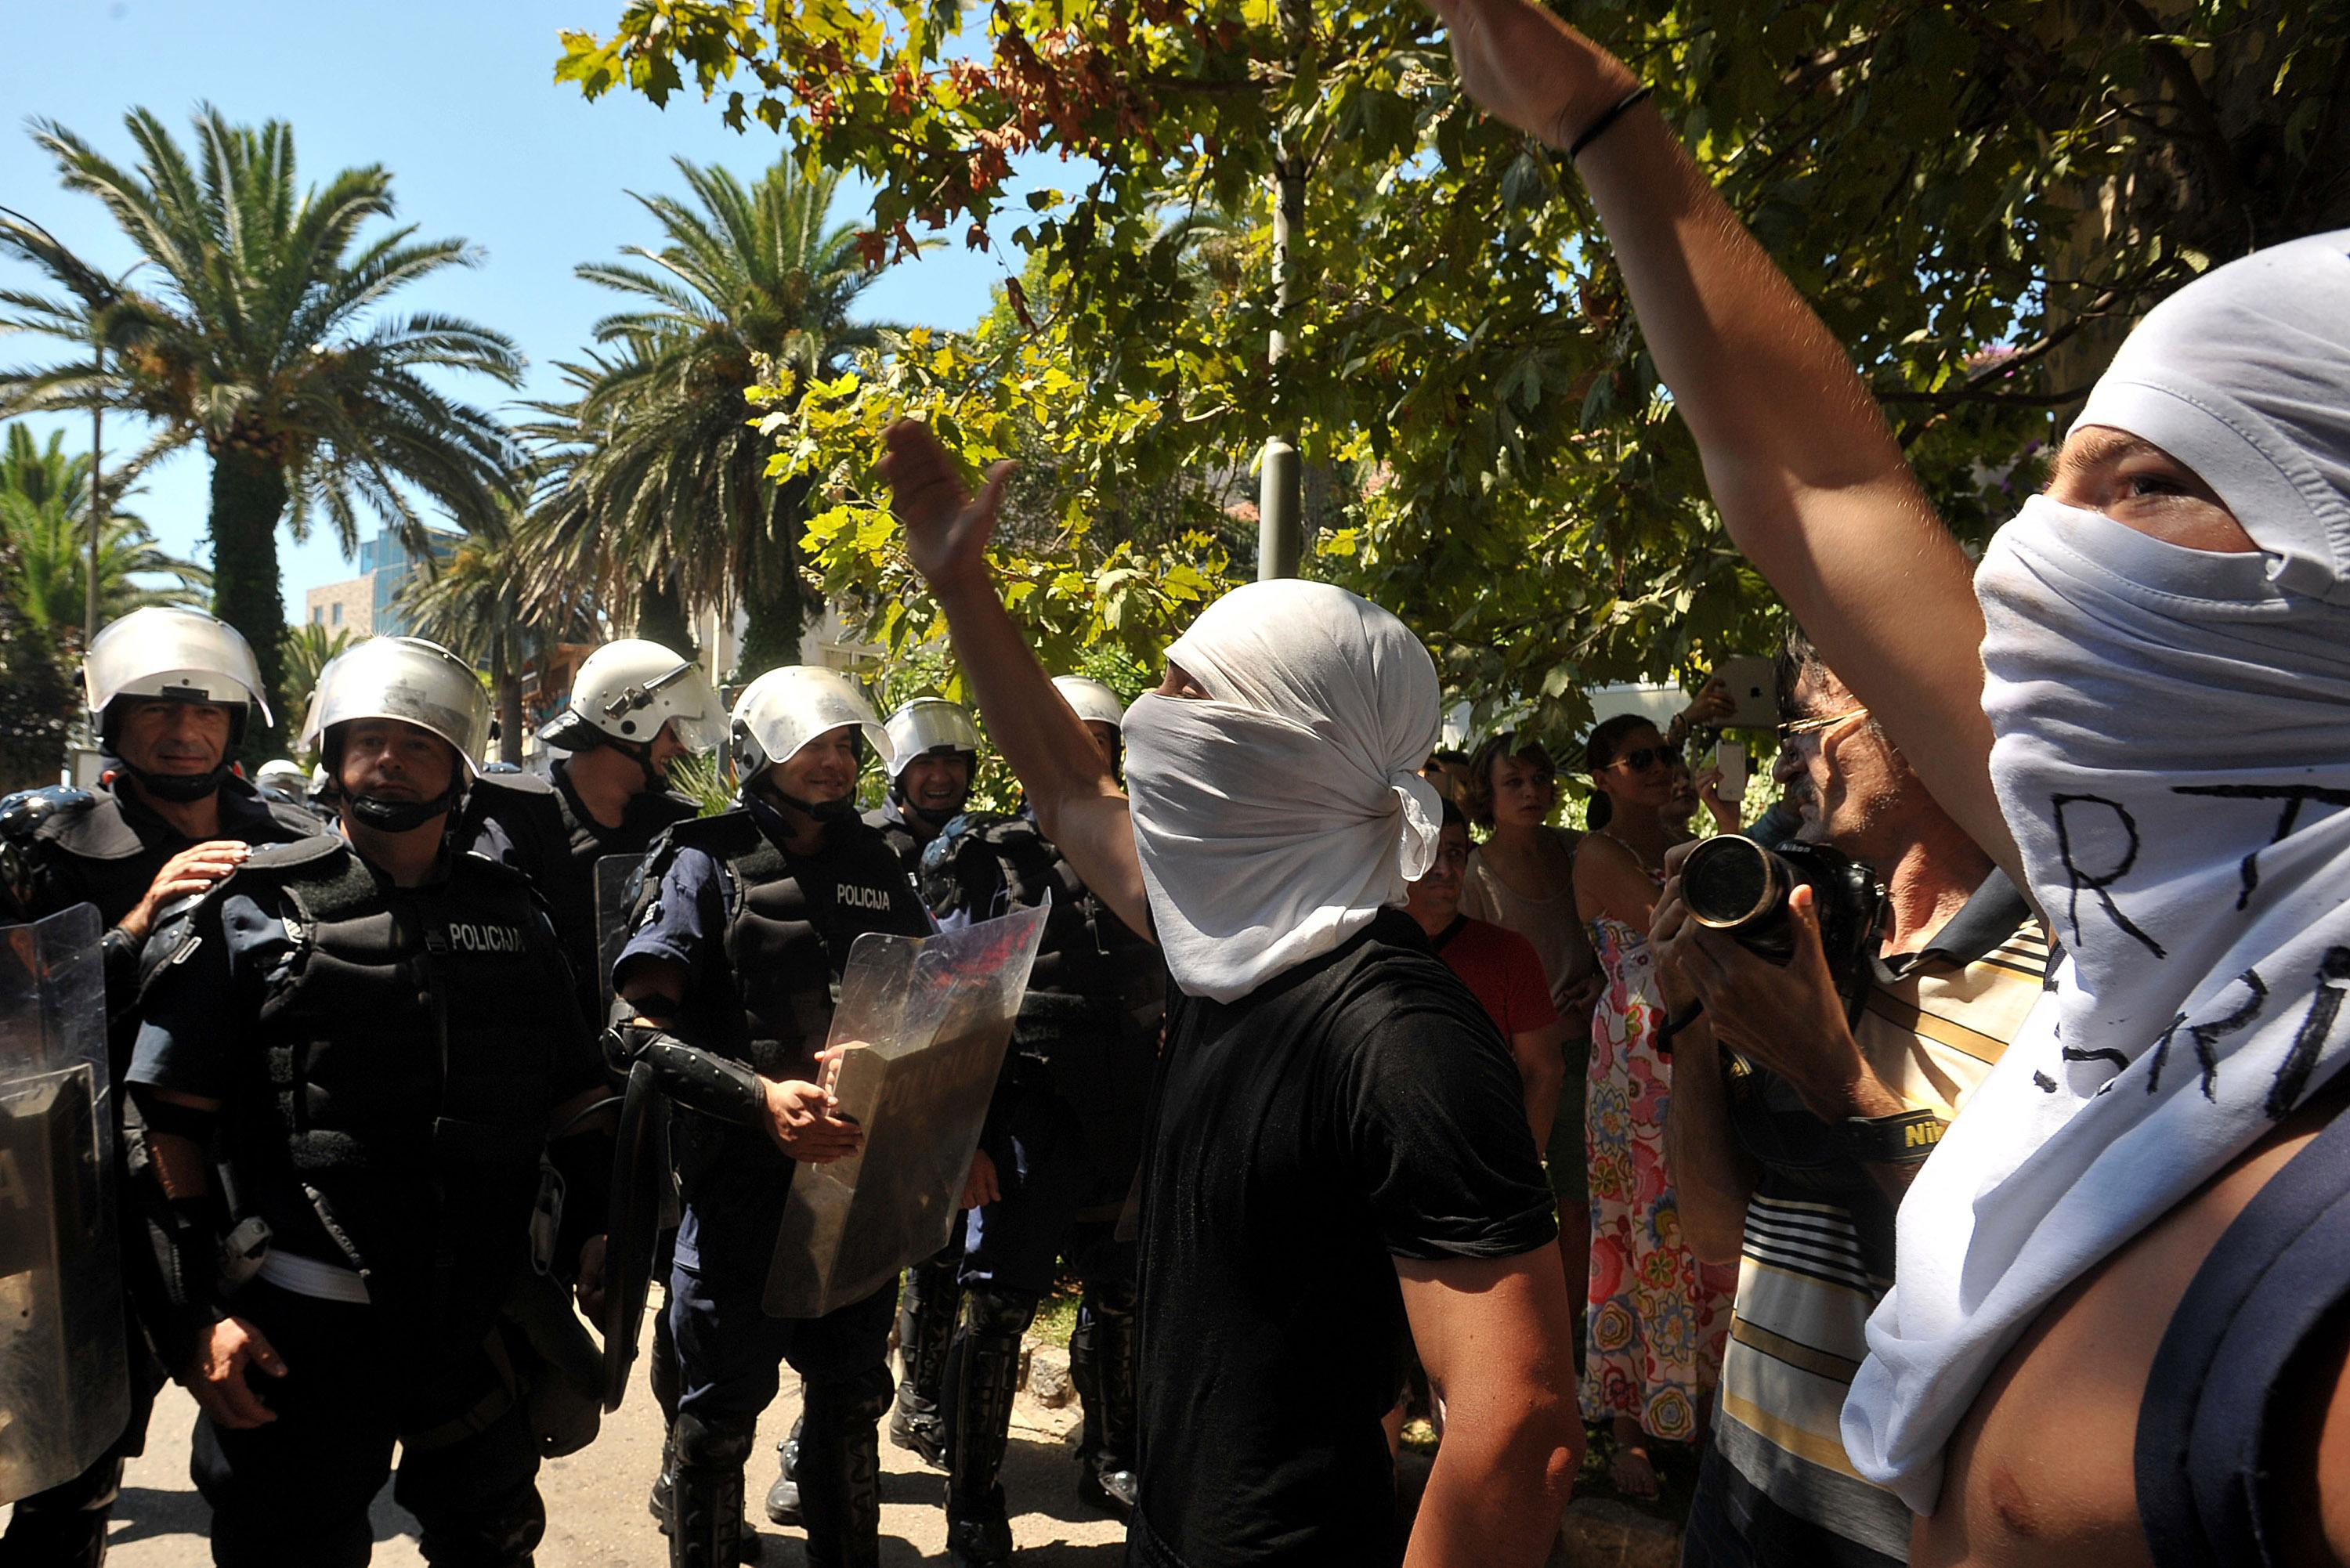 "Protesters shout slogans during the first ever pride event in the Montenegrin seaside resort of Budva, Wednesday, July 24, 2013. Dozens of extremists shouting ""Kill the gays"" have attacked gay activists as they were gathering for the first ever pride event in staunchly conservative Montenegro. The assailants threw rocks, bottles and various other objects at some 20 gay activists and supporters and at special police securing the event in the coastal town of Budva on Wednesday. Police intervened to push the attackers away and the event continued as planned. (AP Photo/Risto Bozovic)"